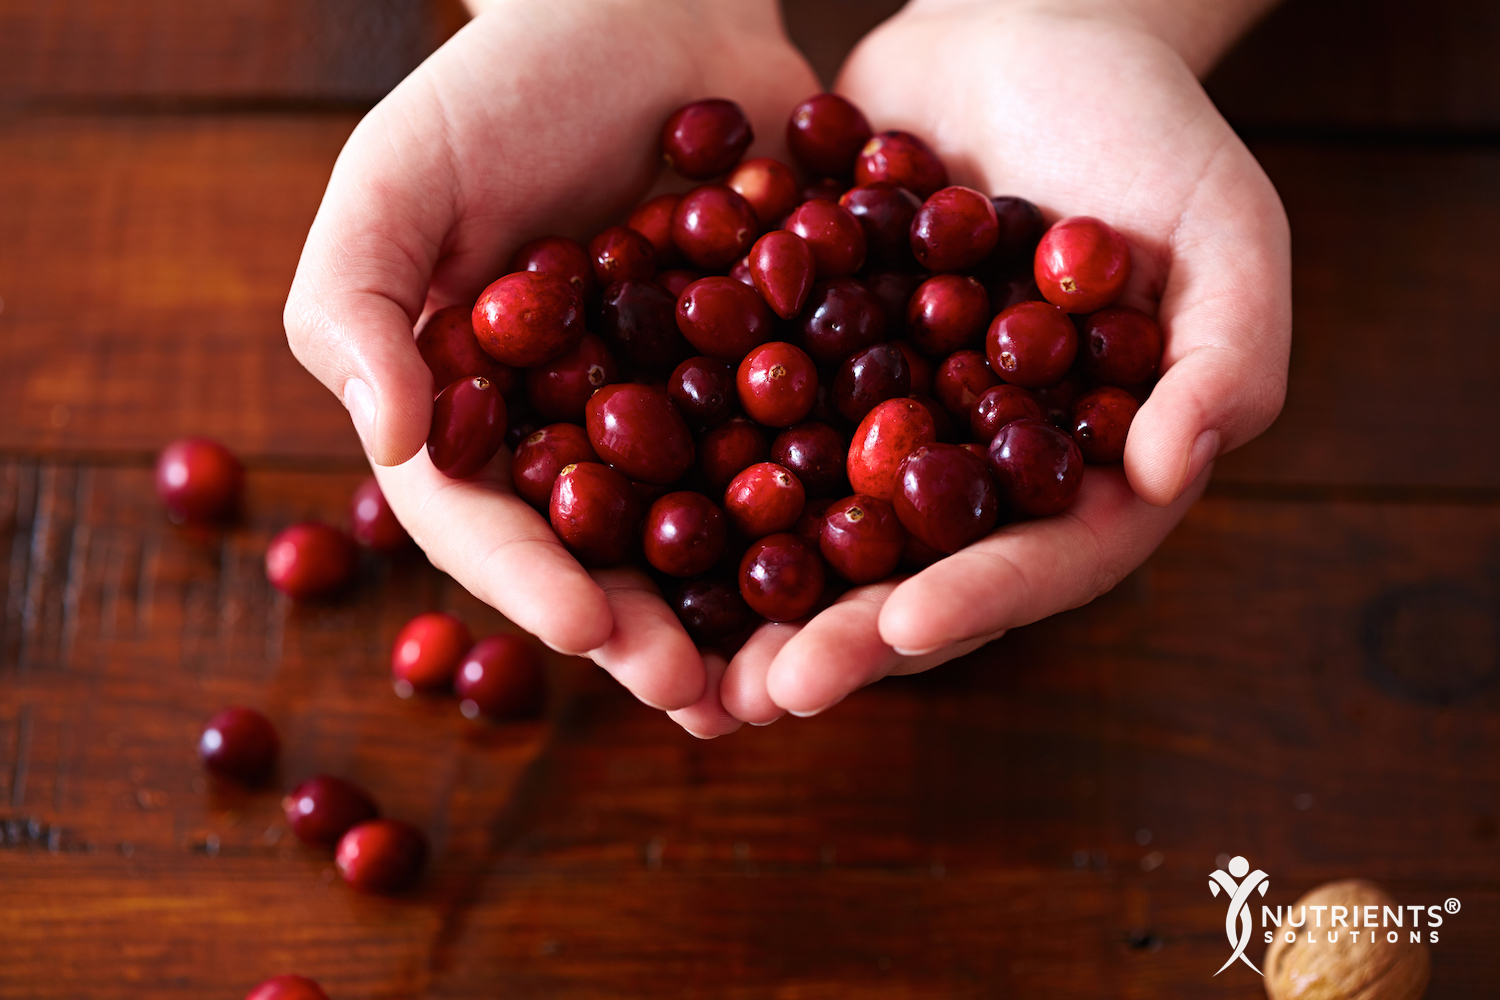 6 Extraordinary Ways Cranberries Protect Your Health